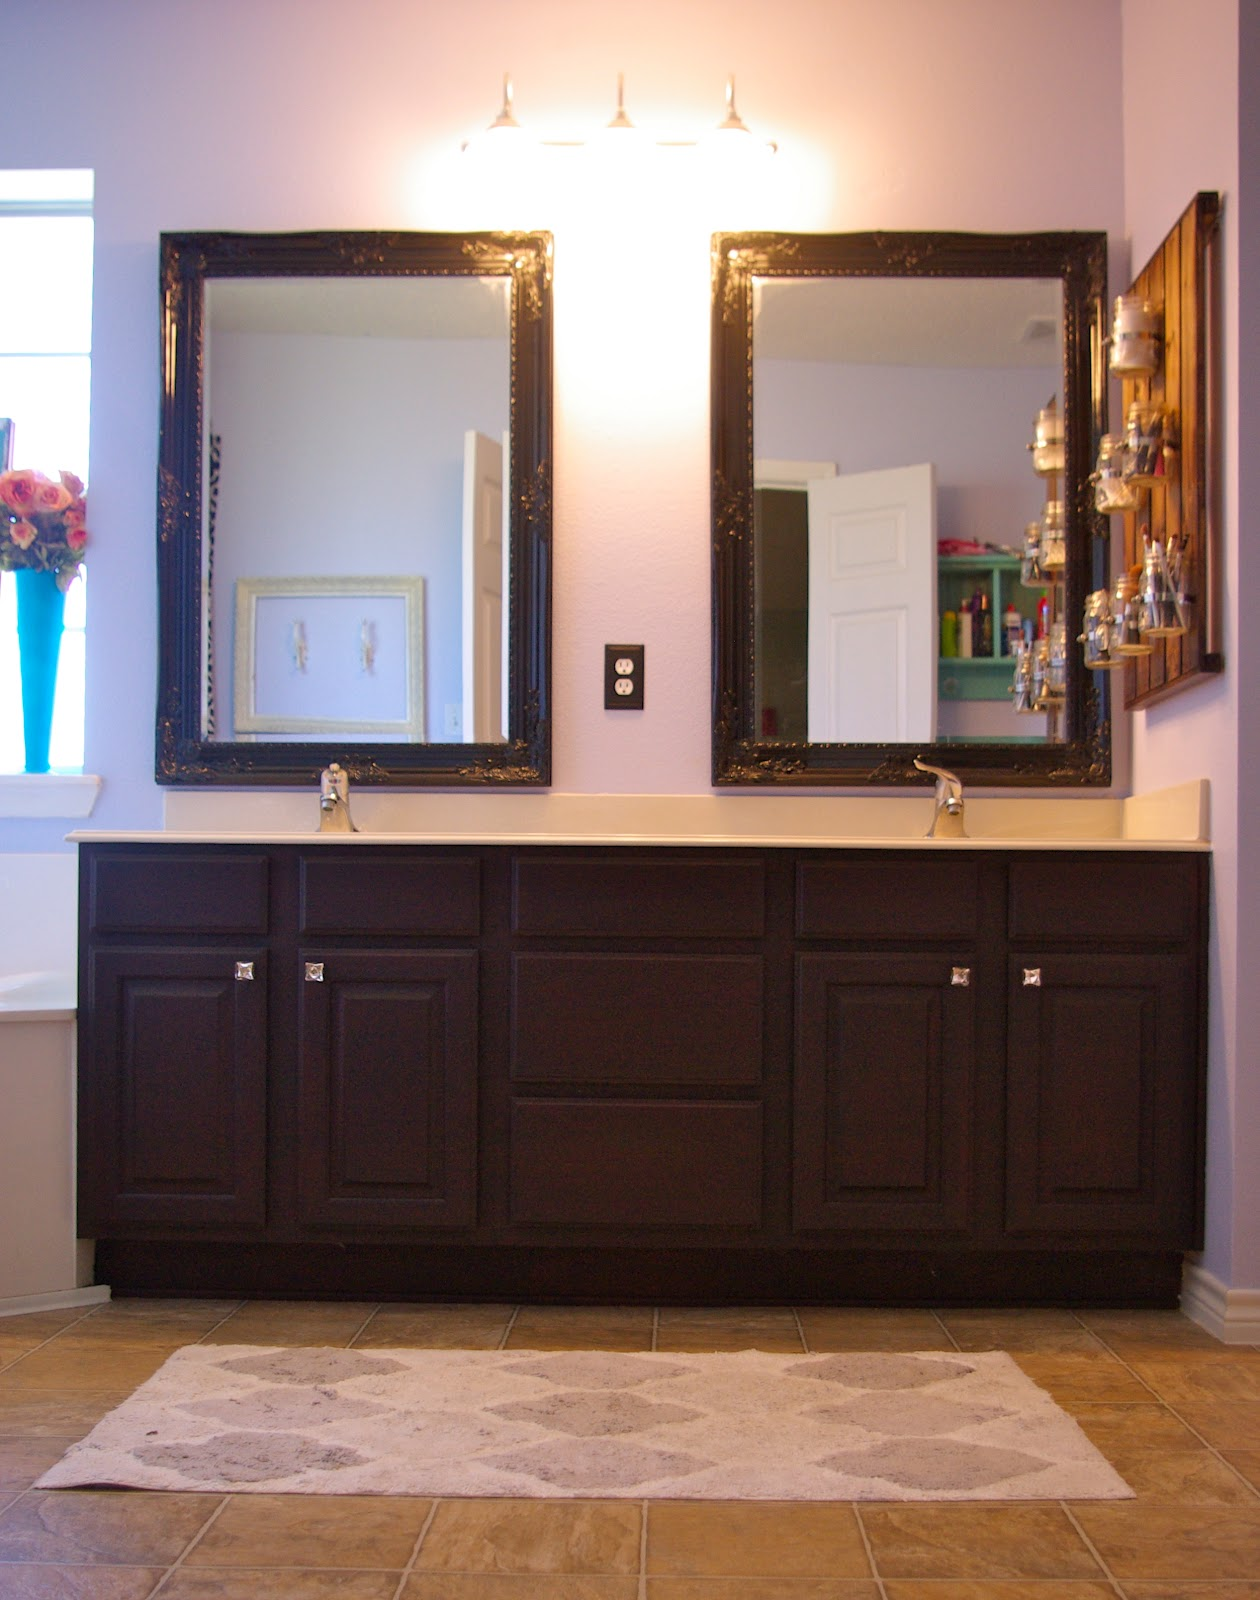 Refinished Bathroom Cabinets : refinish bathroom cabinets - Cheerinfomania.Com